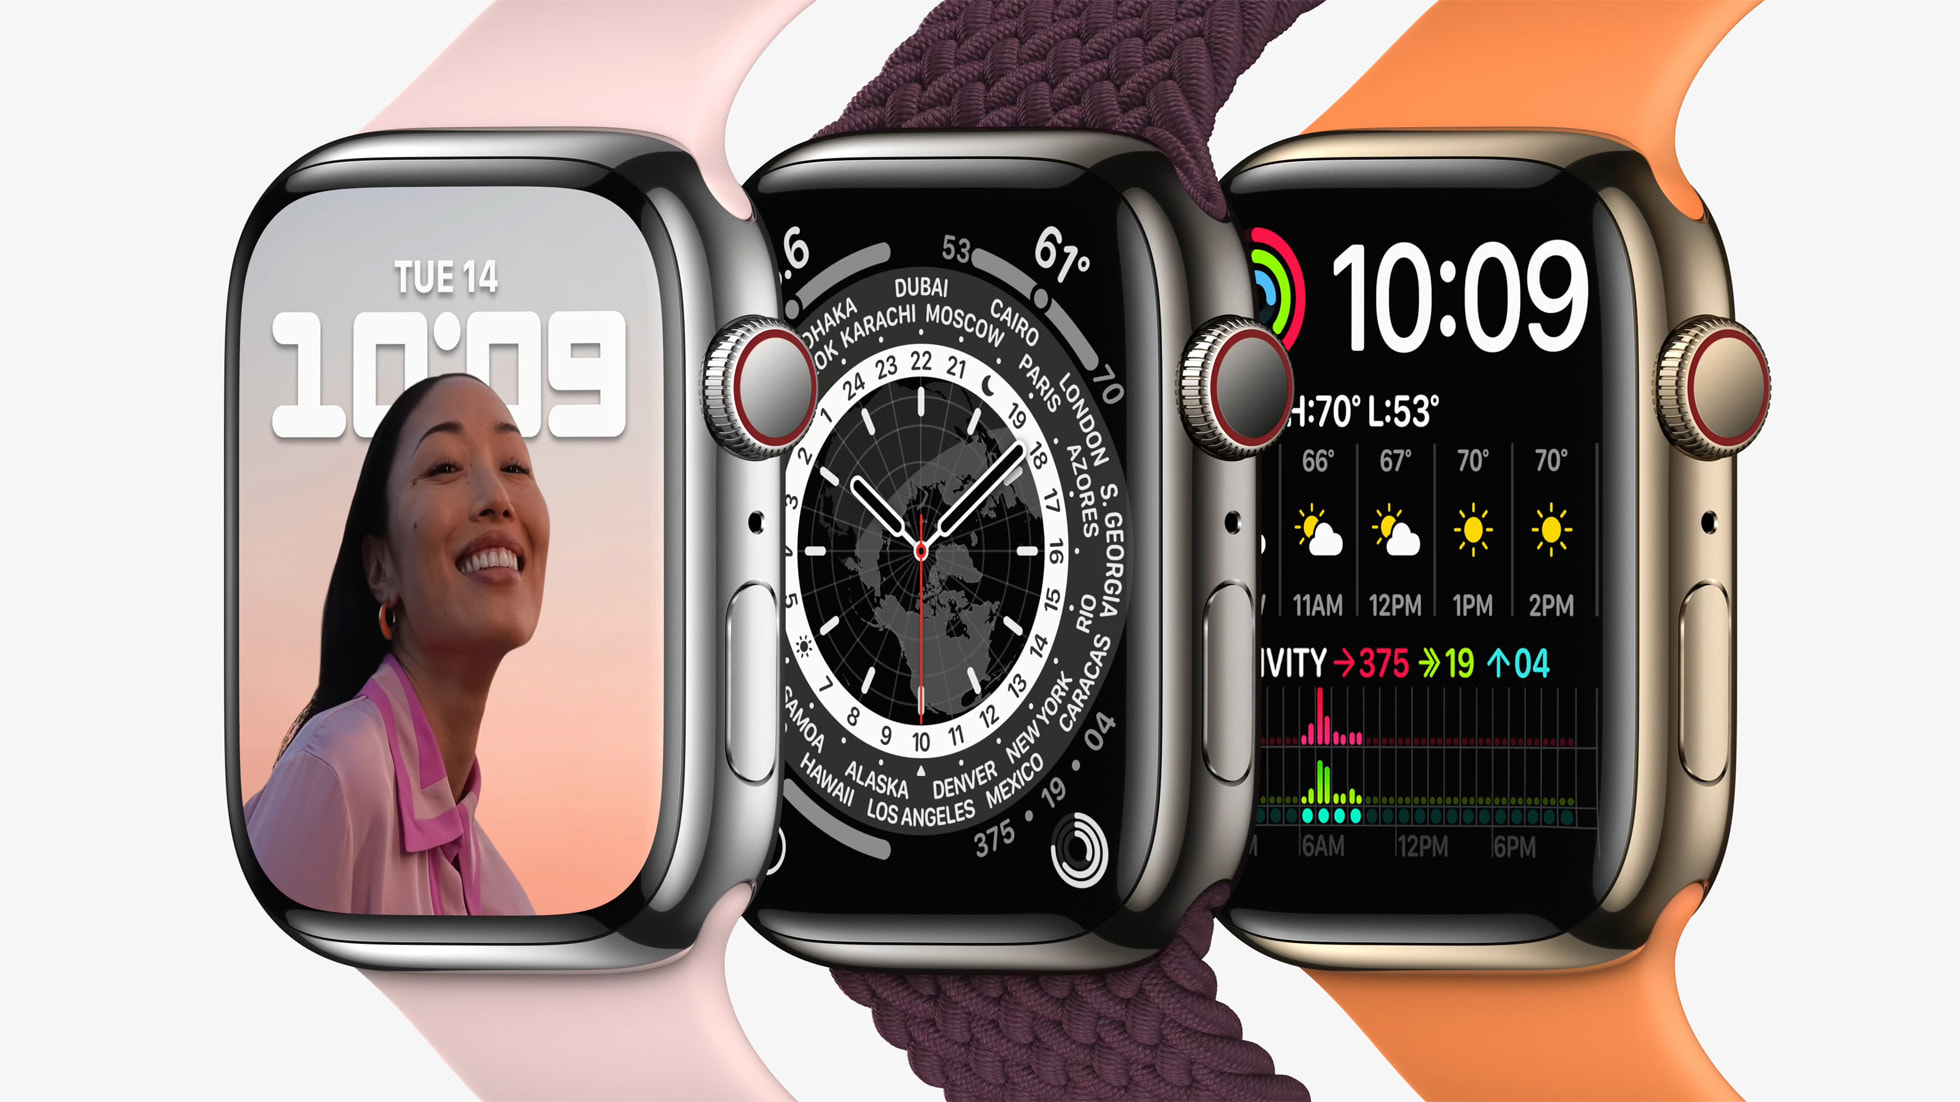 Apple Watch Series 7 Tidbits: S7 Chip, Storage Remains 32GB, USB-C Fast Charging Cable in the Box, and More